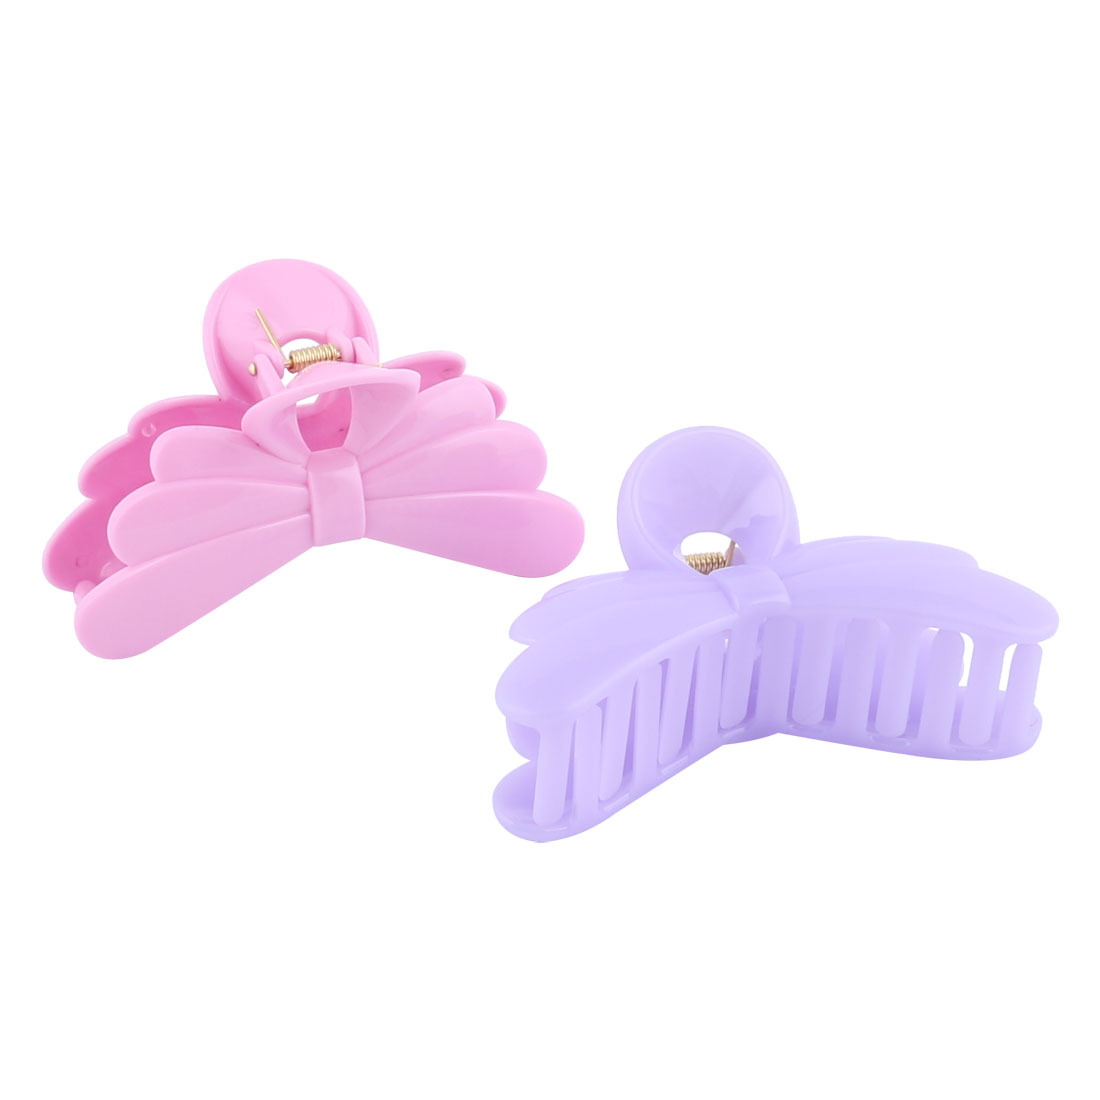 Ladies Plastic Butterfly Shape Bath Barrette Claw Clamp Clip Hairpin Pink Purple 2pcs